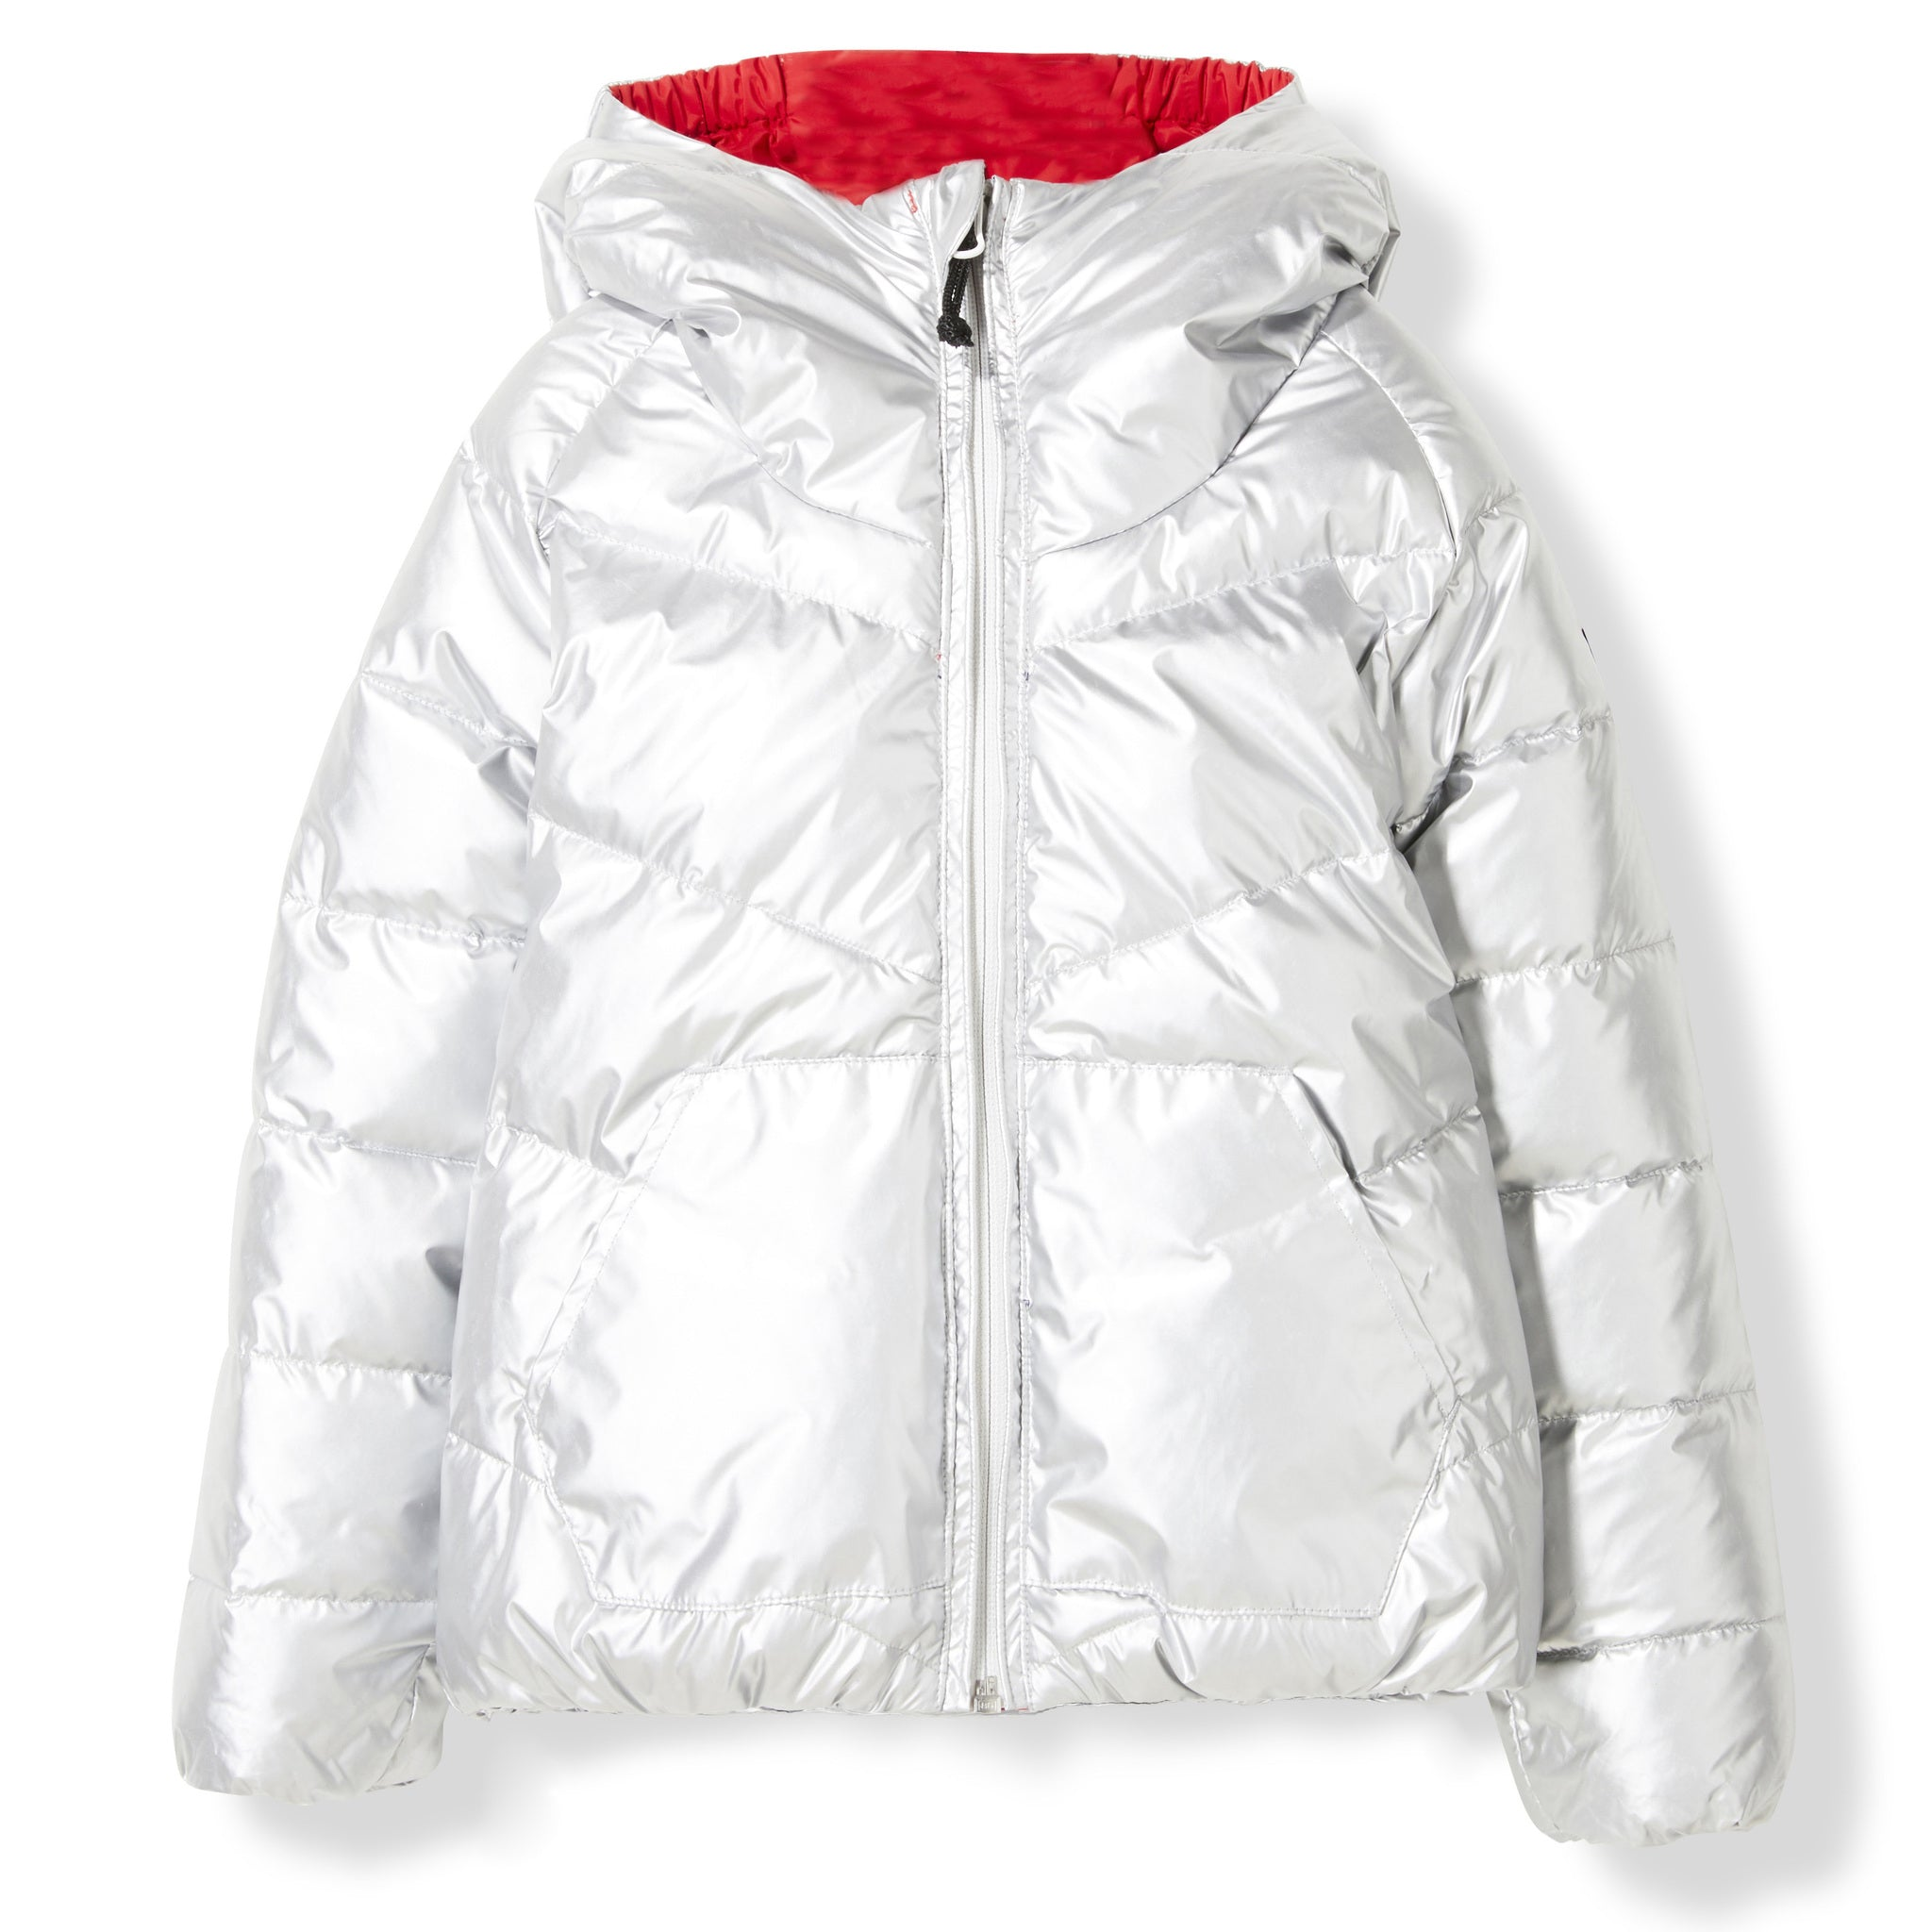 SNOWDANCE Silver Colorblock -  Woven Reversible Down Jacket 2